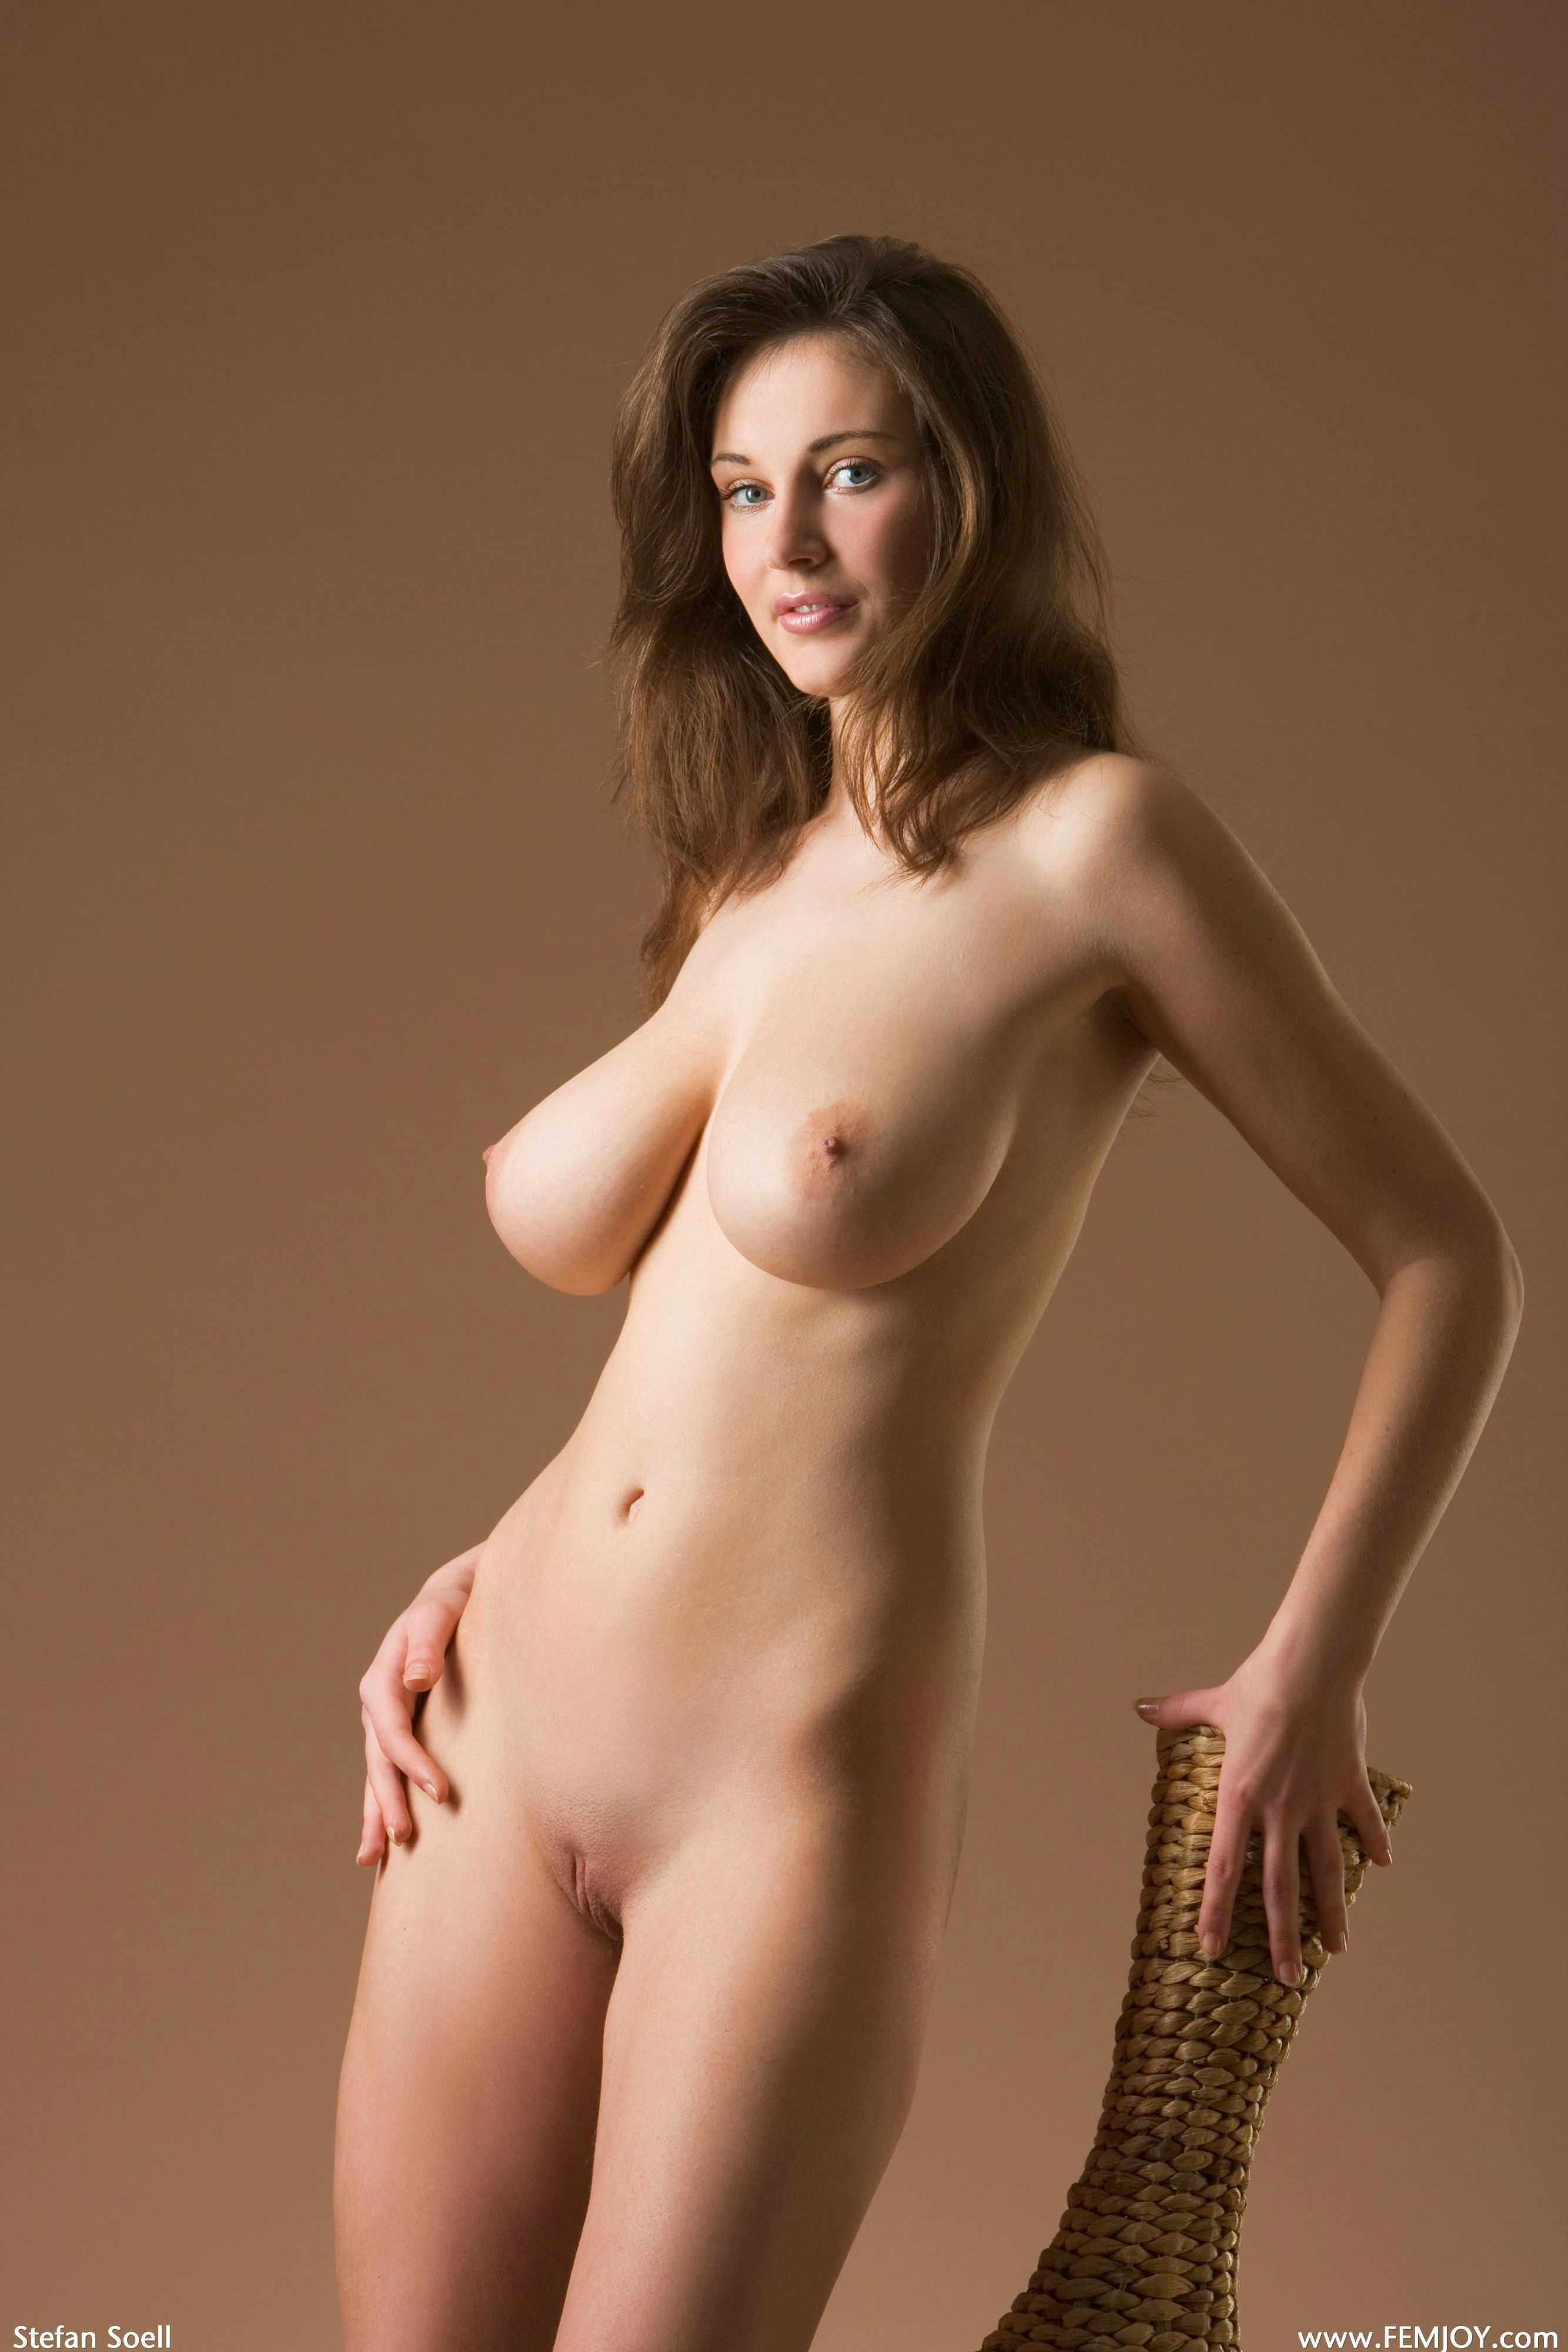 slim-and-naked-women-sex-picuture-very-very-hot-man